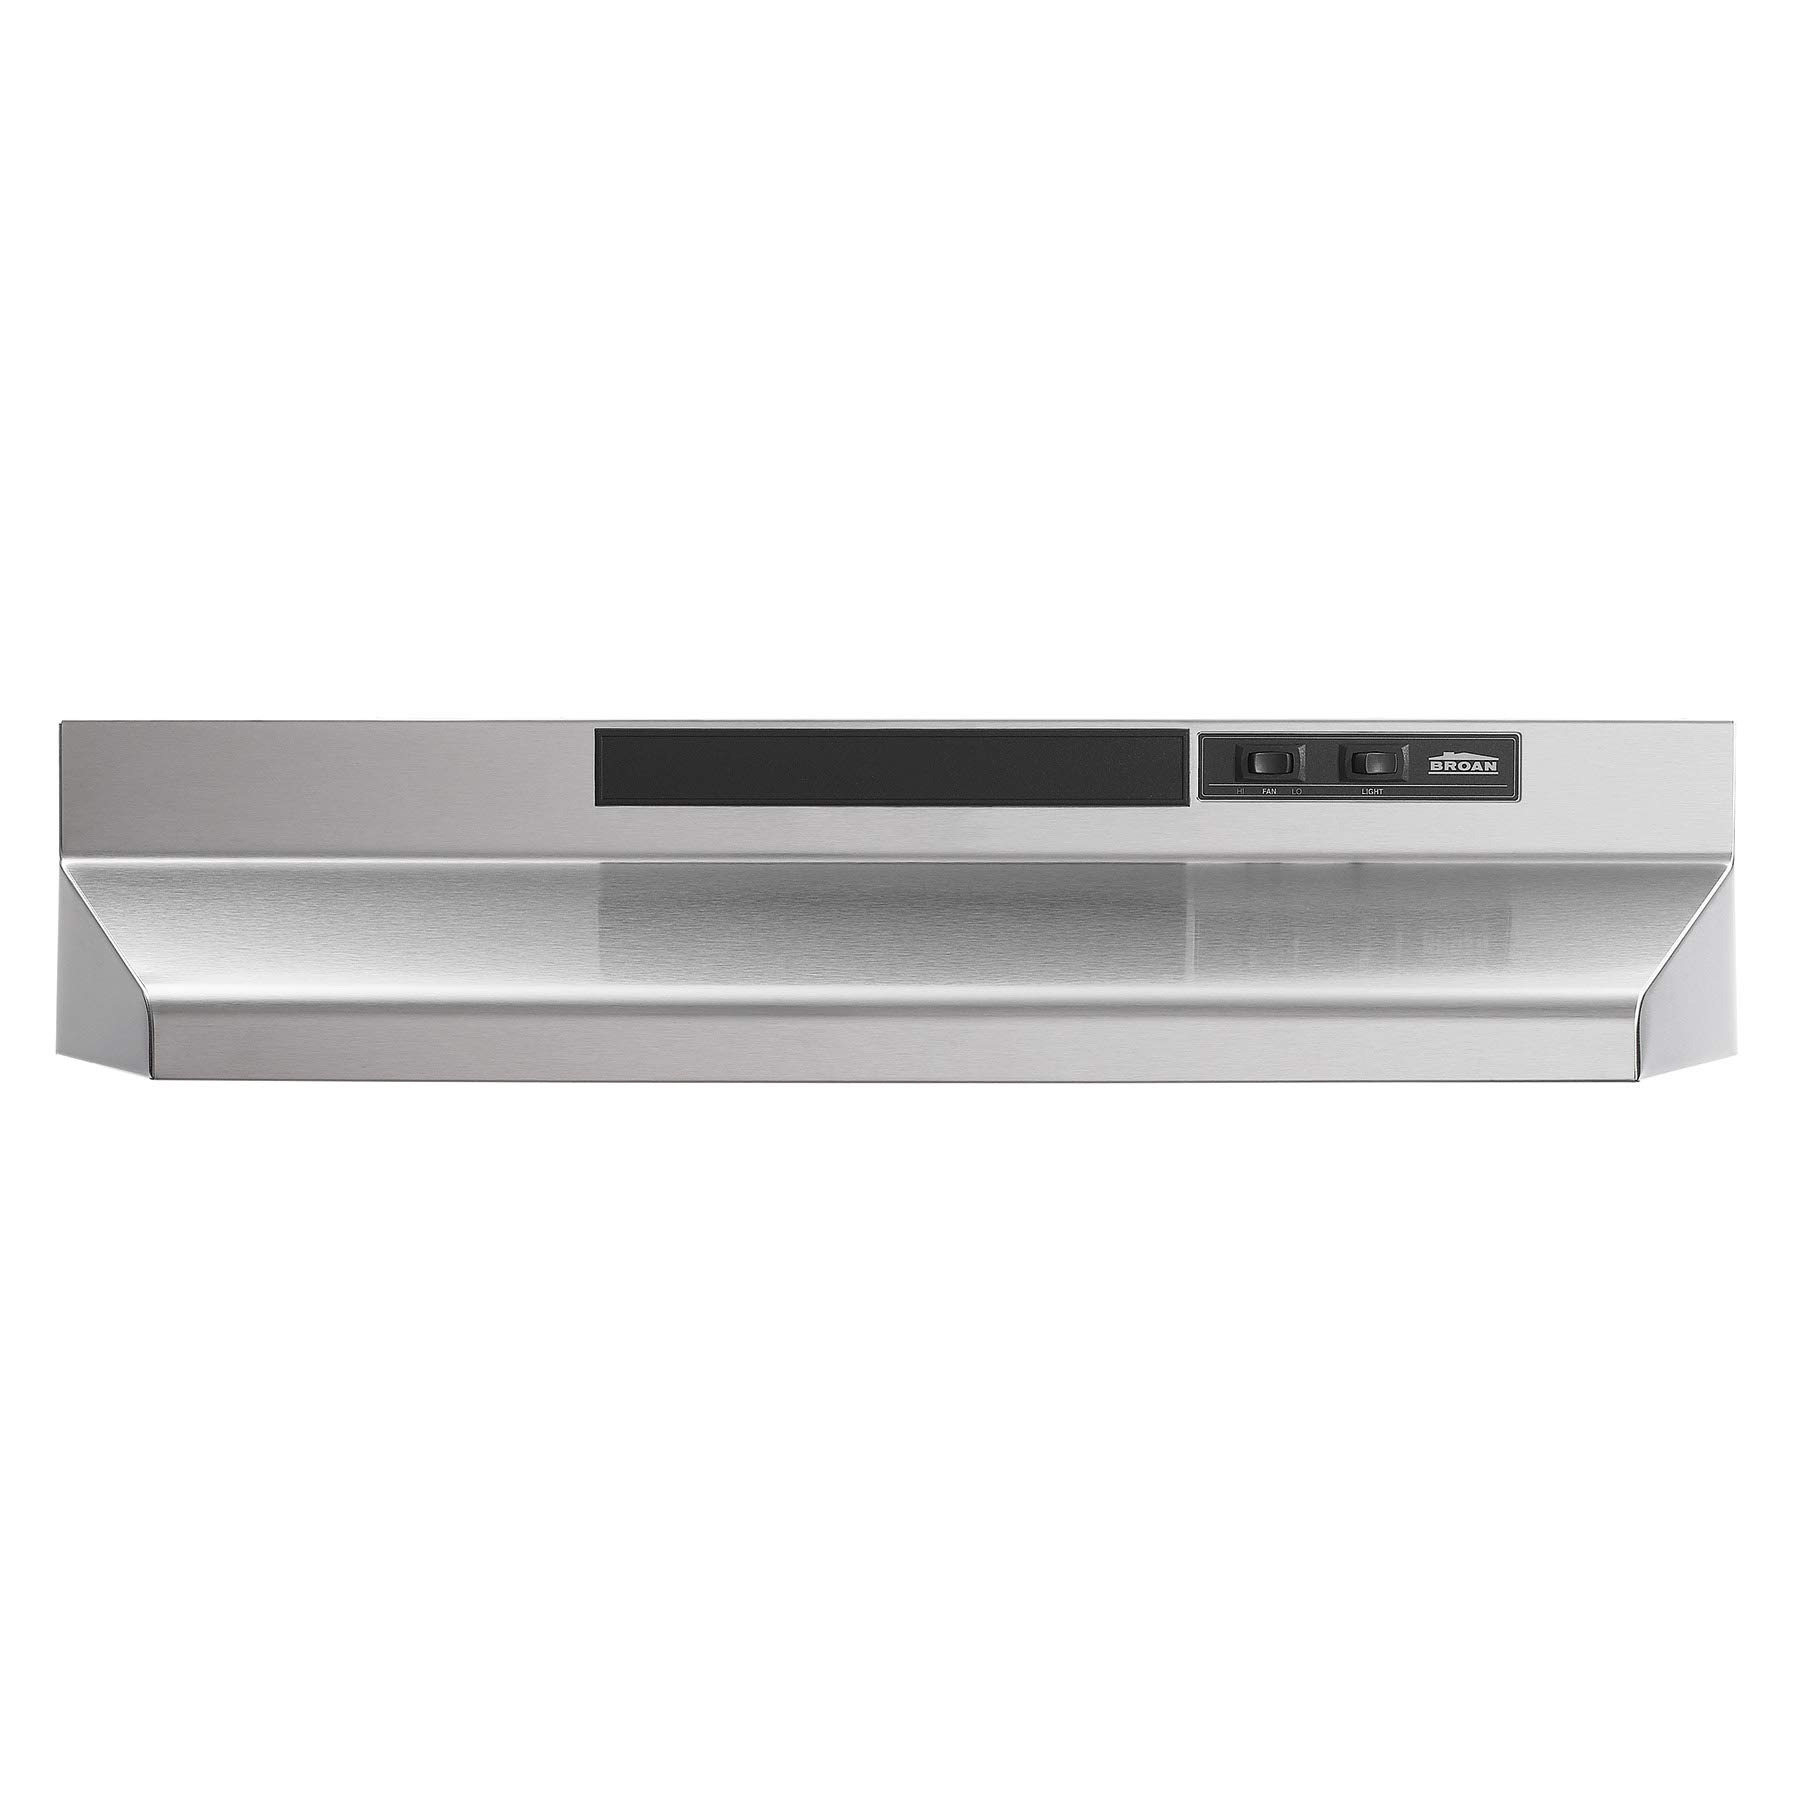 Broan-NuTone BroanNuTone BUEZ330SS Convertible Under-Cabinet Easy Install System, Stainless Steel, 30-Inch Range Hoods